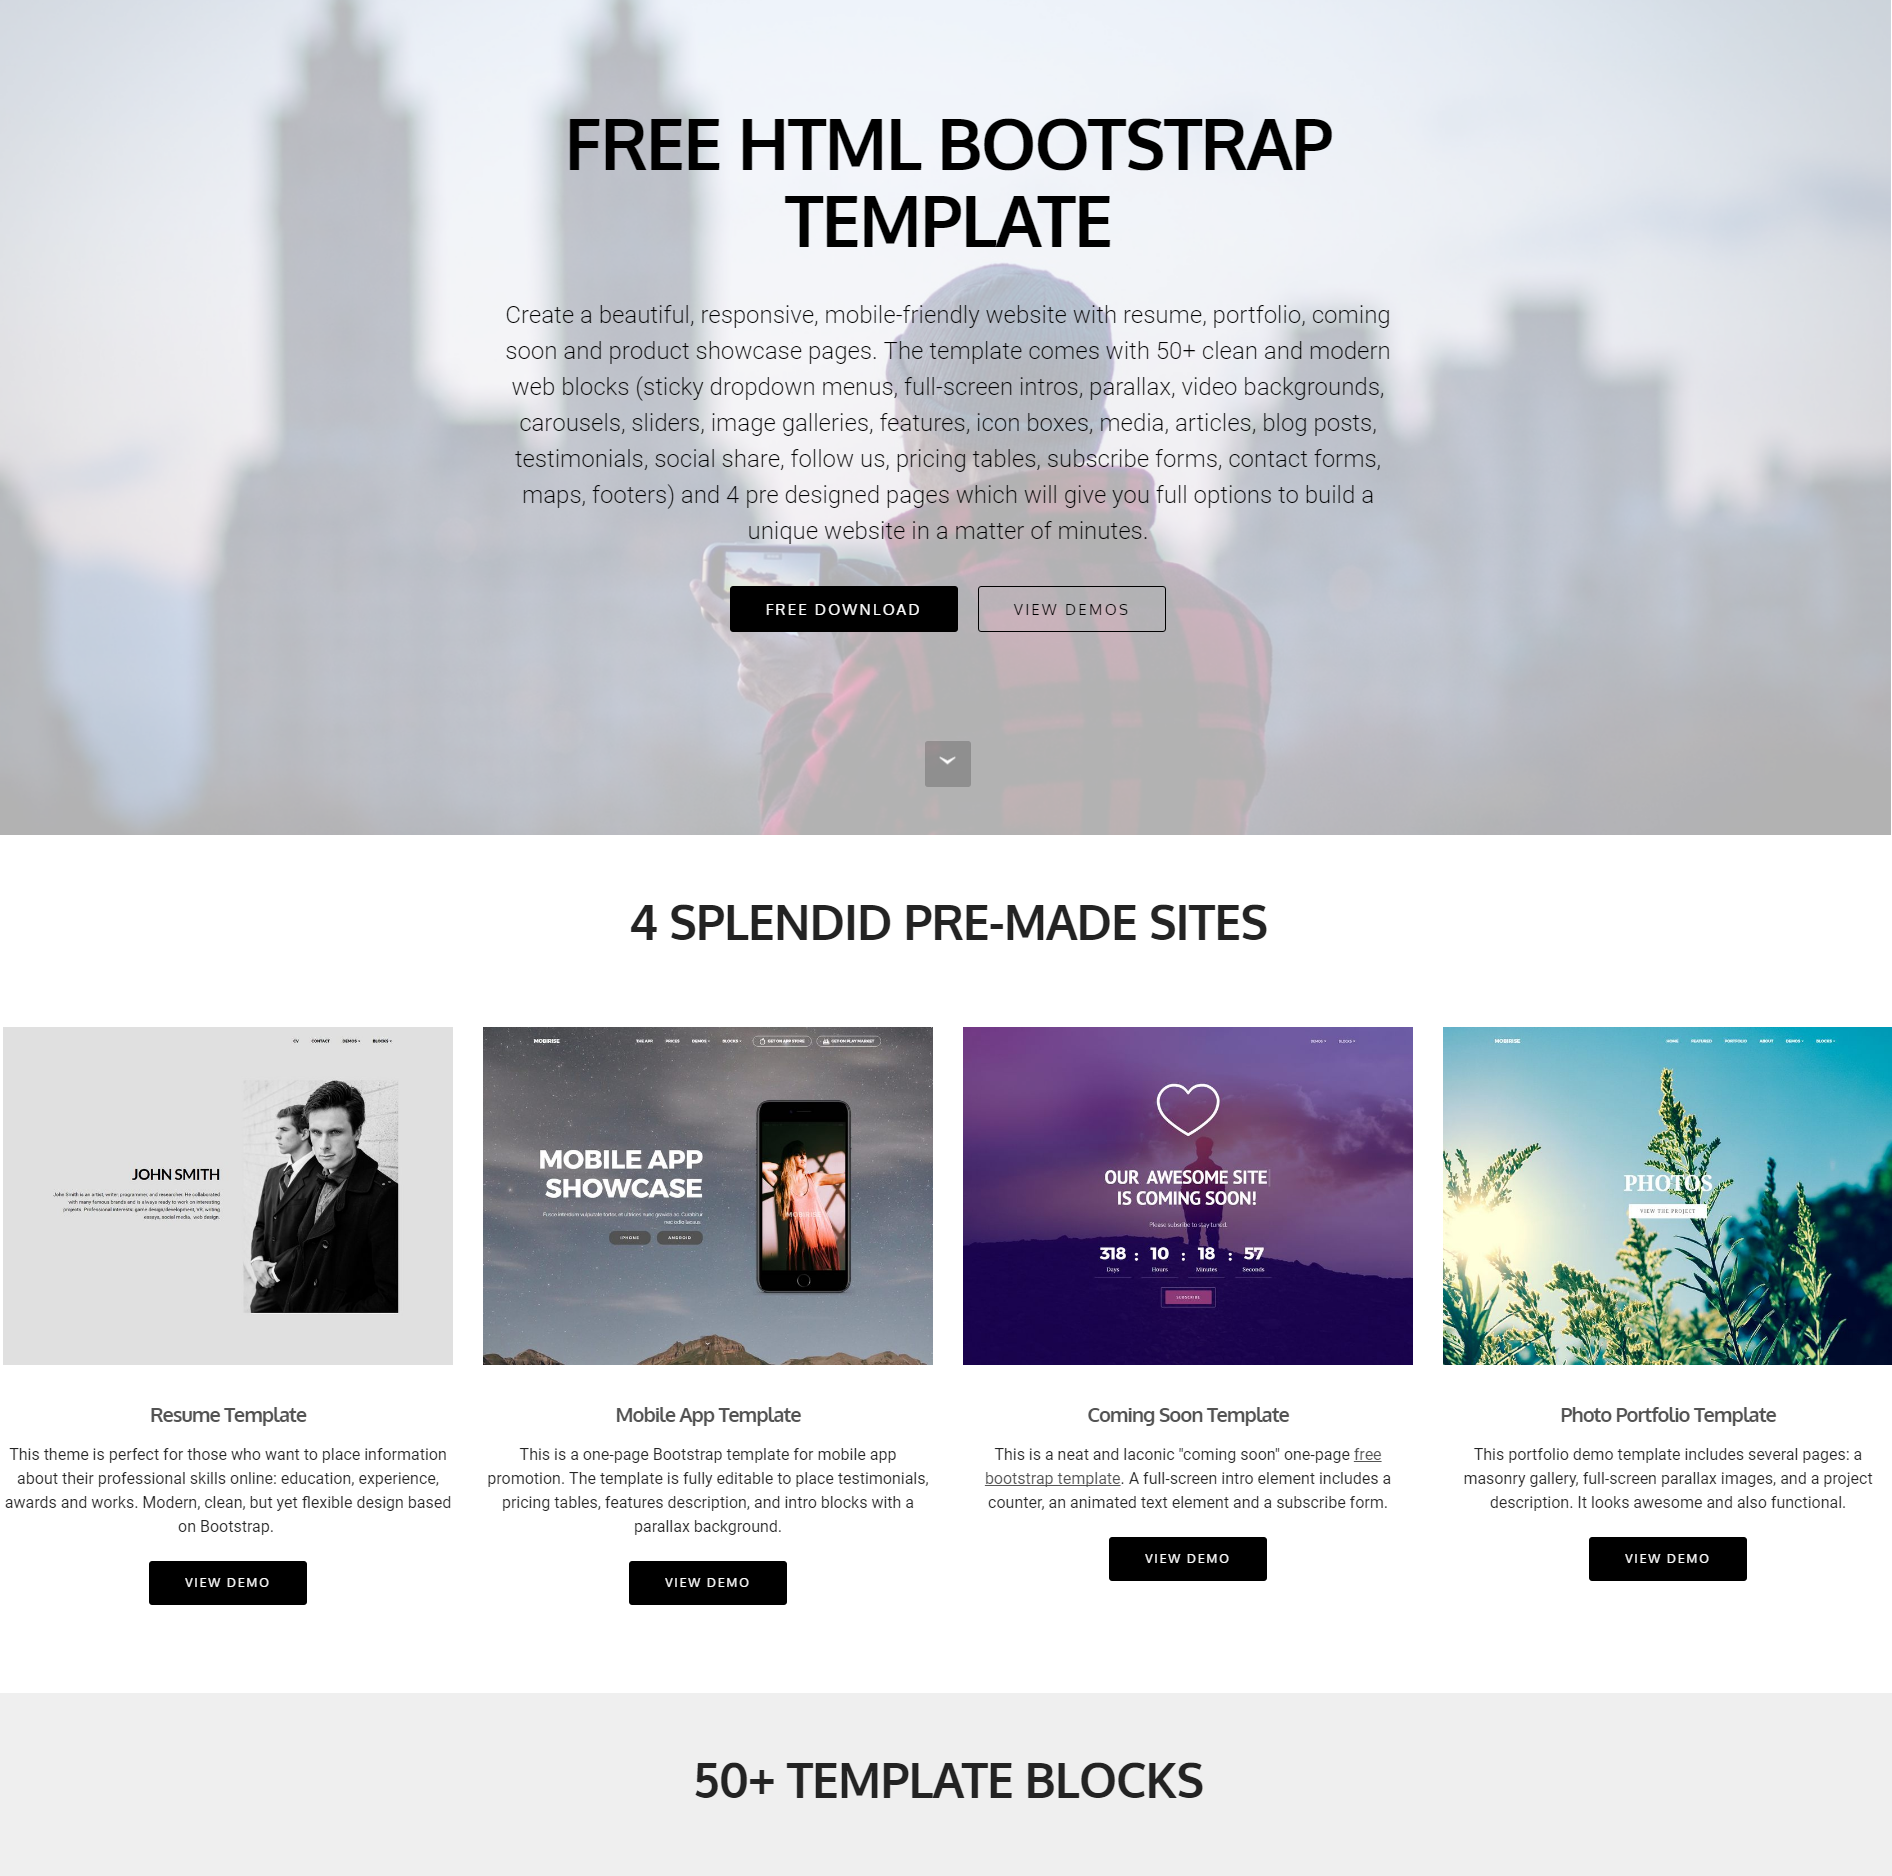 51 Adding Card Template Bootstrap Free Download with Card Template Bootstrap Free